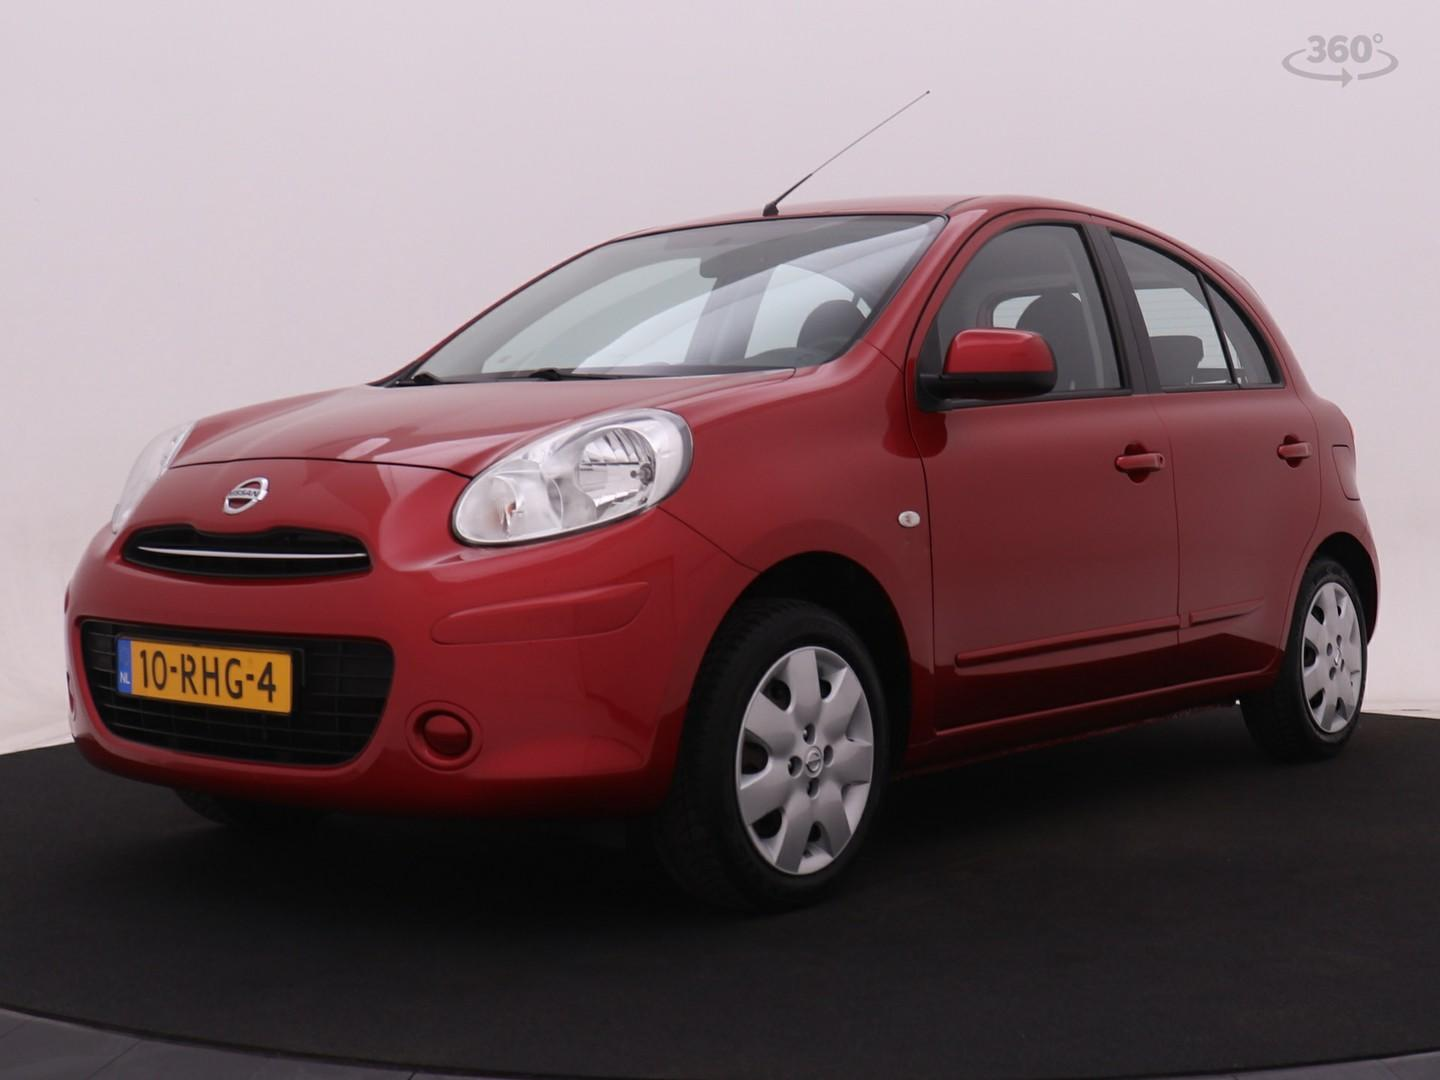 Nissan Micra 1.2 acenta 5drs climate control i cruise control i trekhaak (fietsendrager)